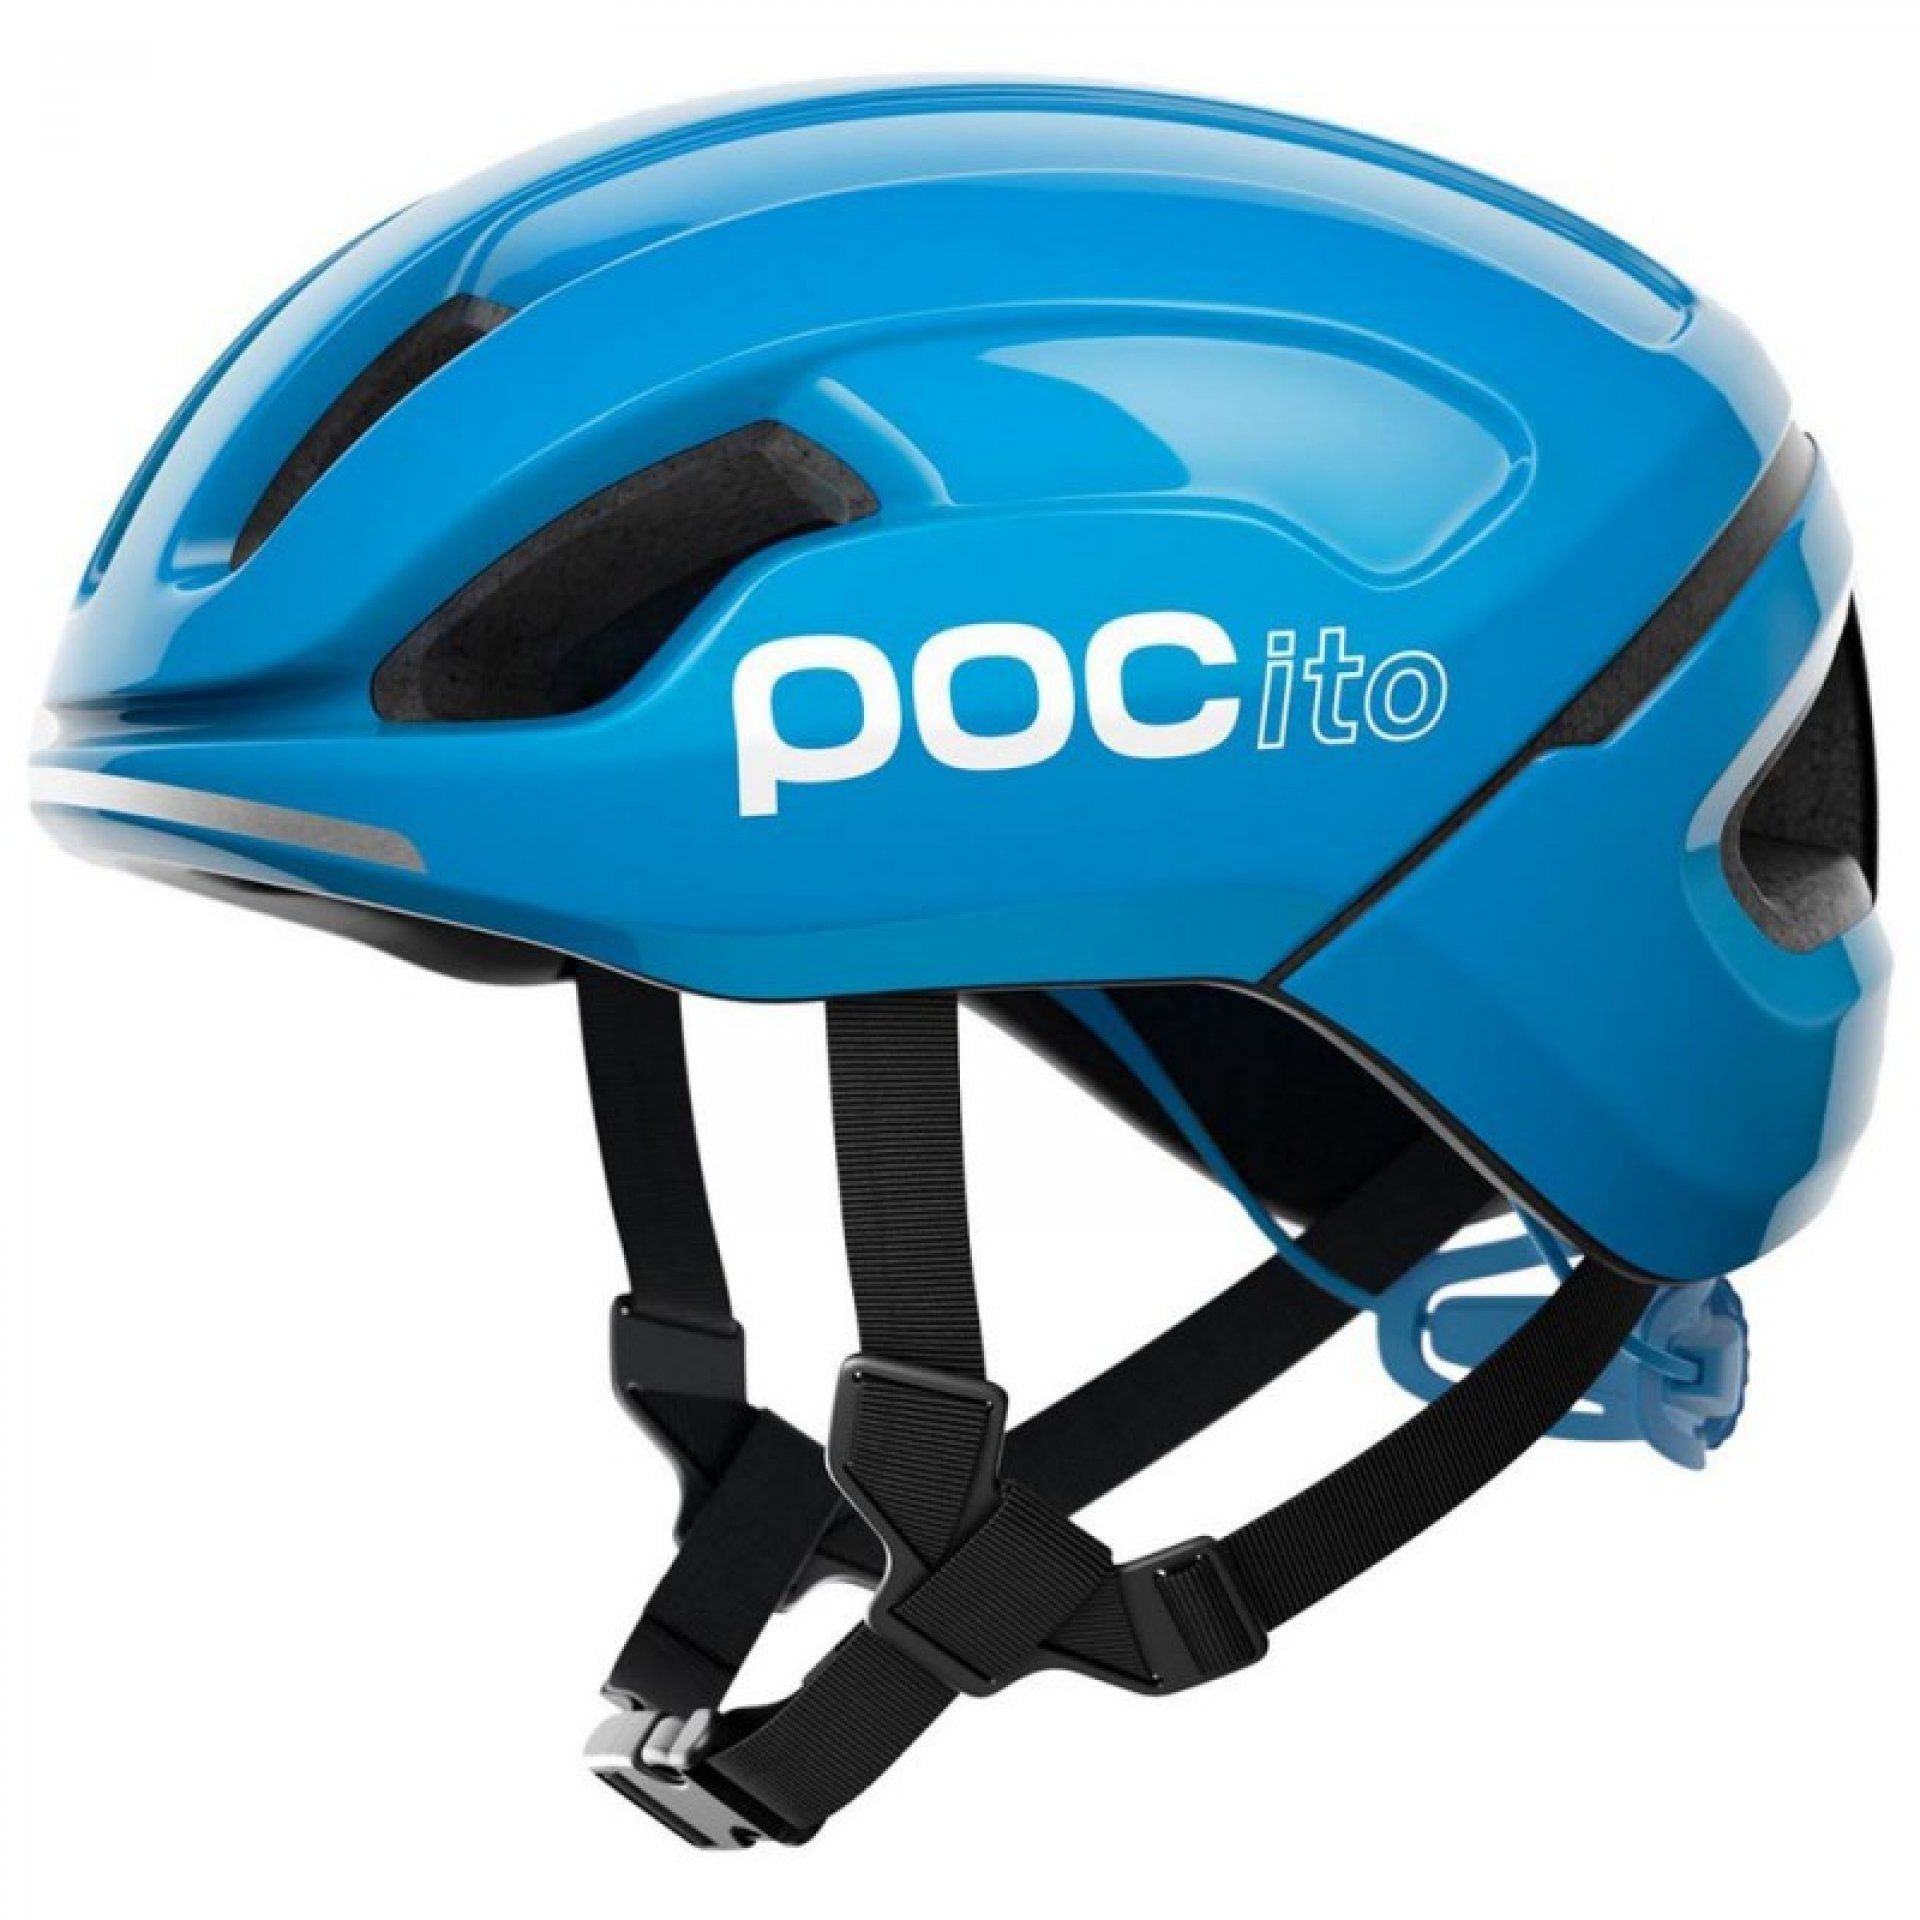 KASK ROWEROWY POC POCITO OMNE SPIN FLUORESCENT BLUE 1